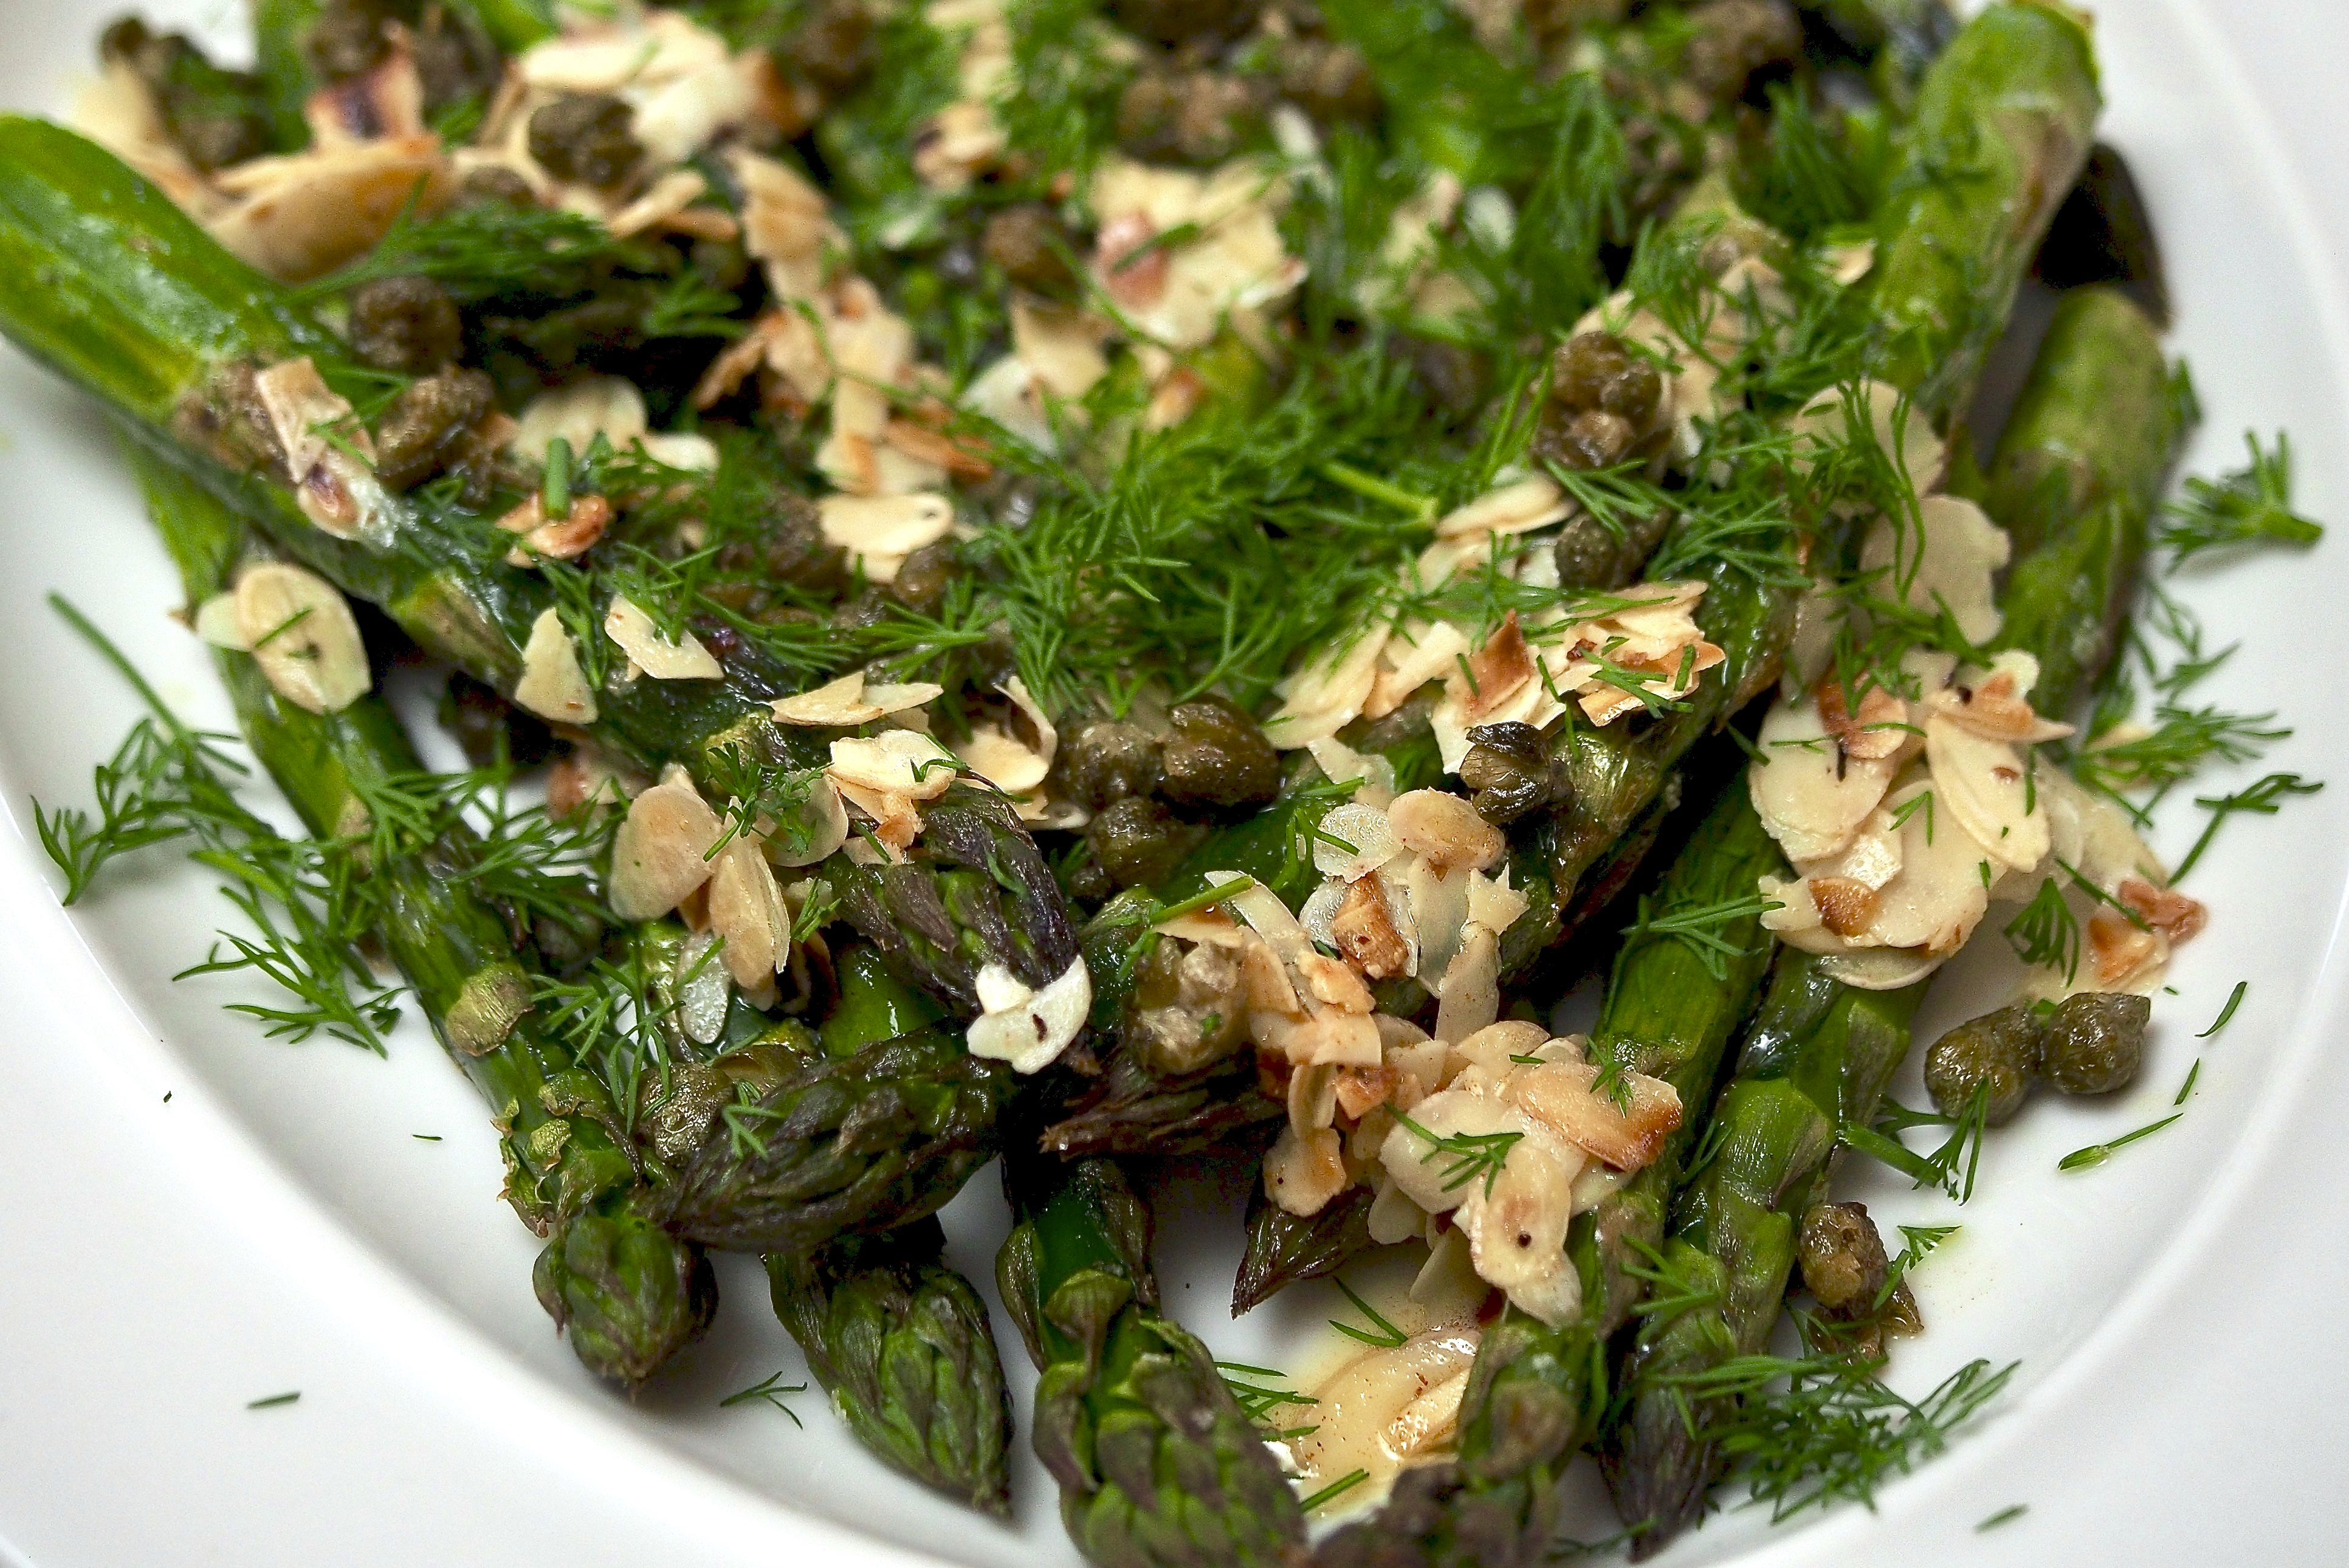 Roasted Asparagus with Almonds, Capers & Dill